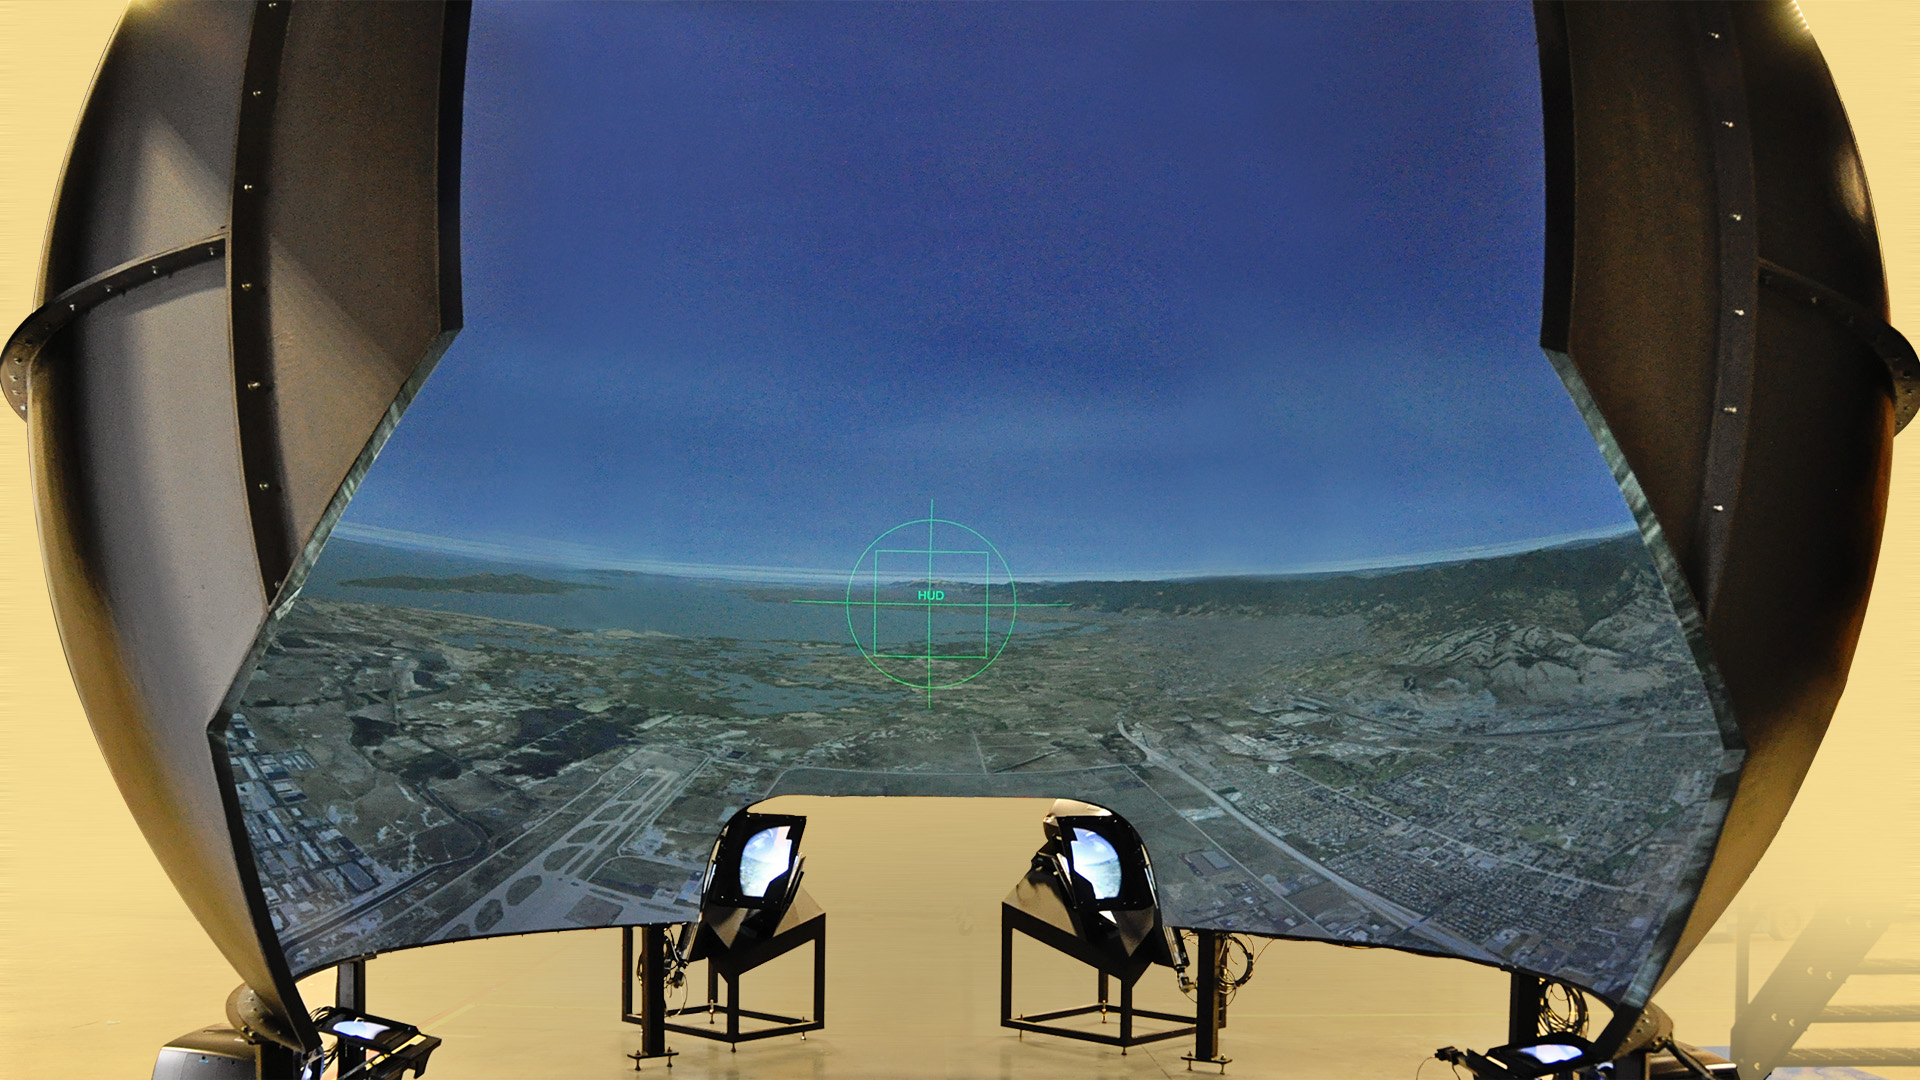 Image of terrain from the inside of the Spectraview dome